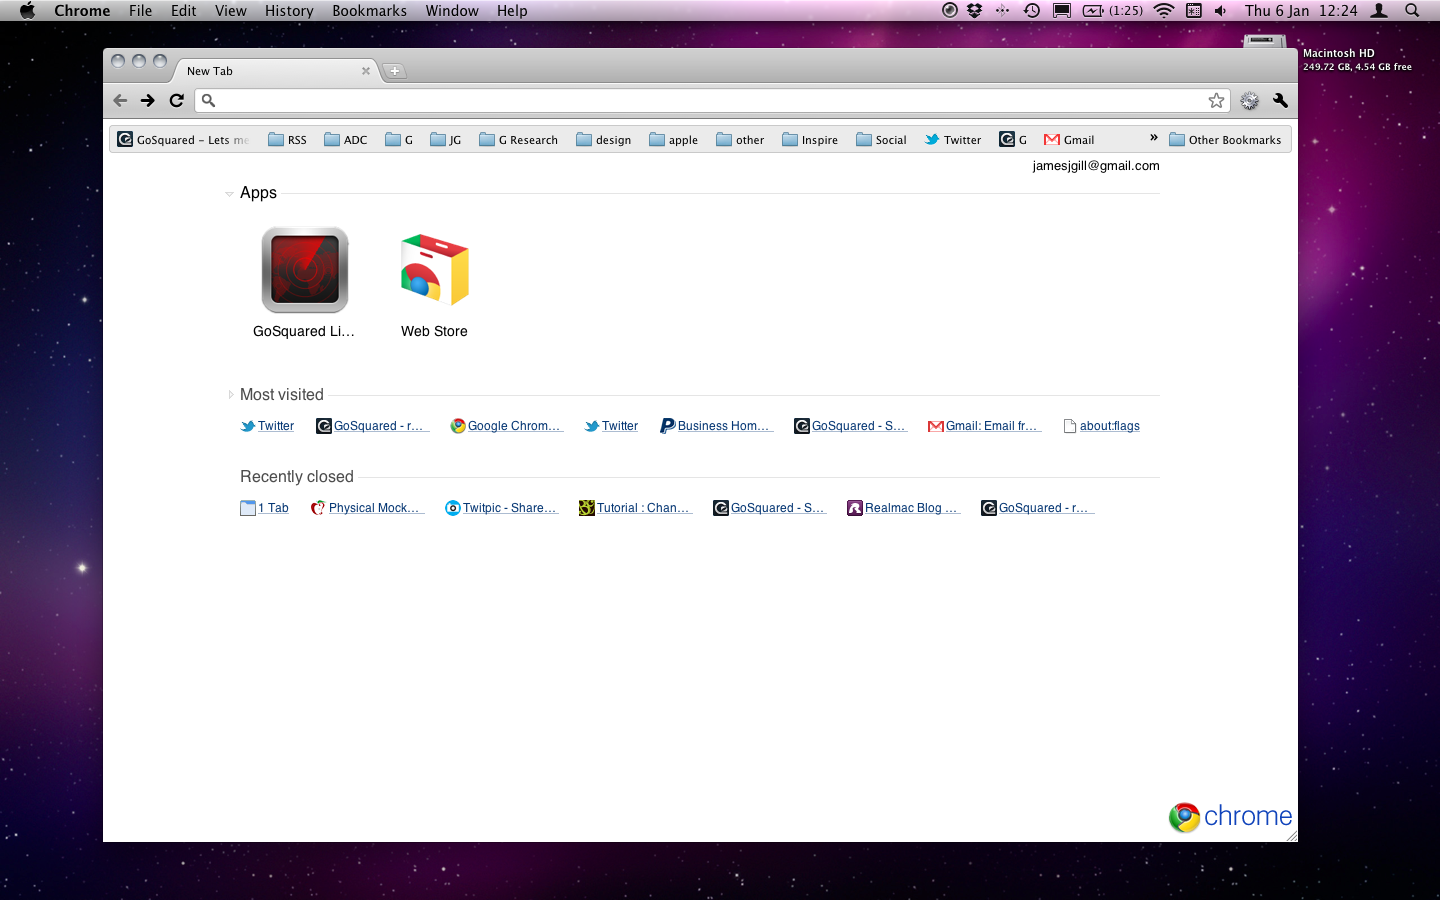 GoSquared on the home screen of Google Chrome